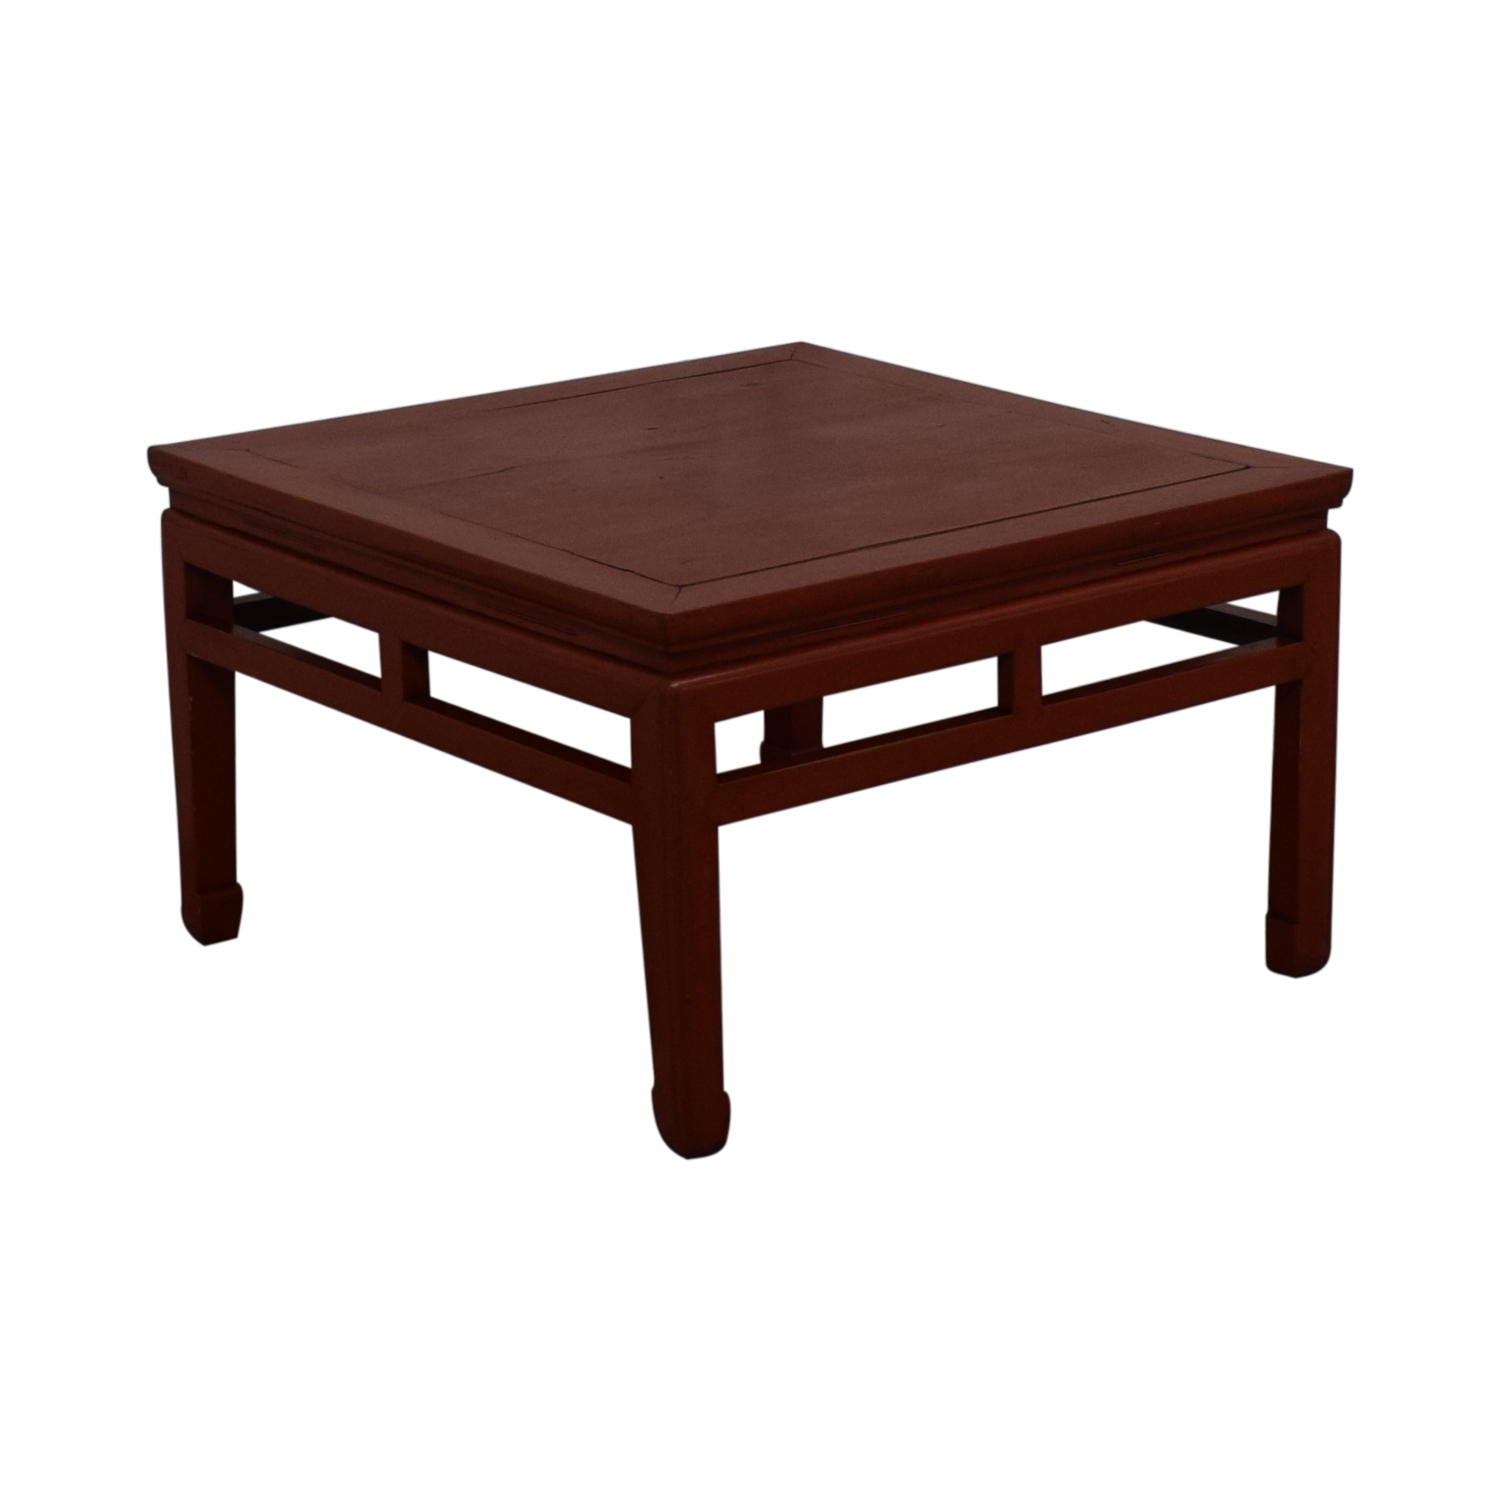 Rustic Red Coffee Table for sale